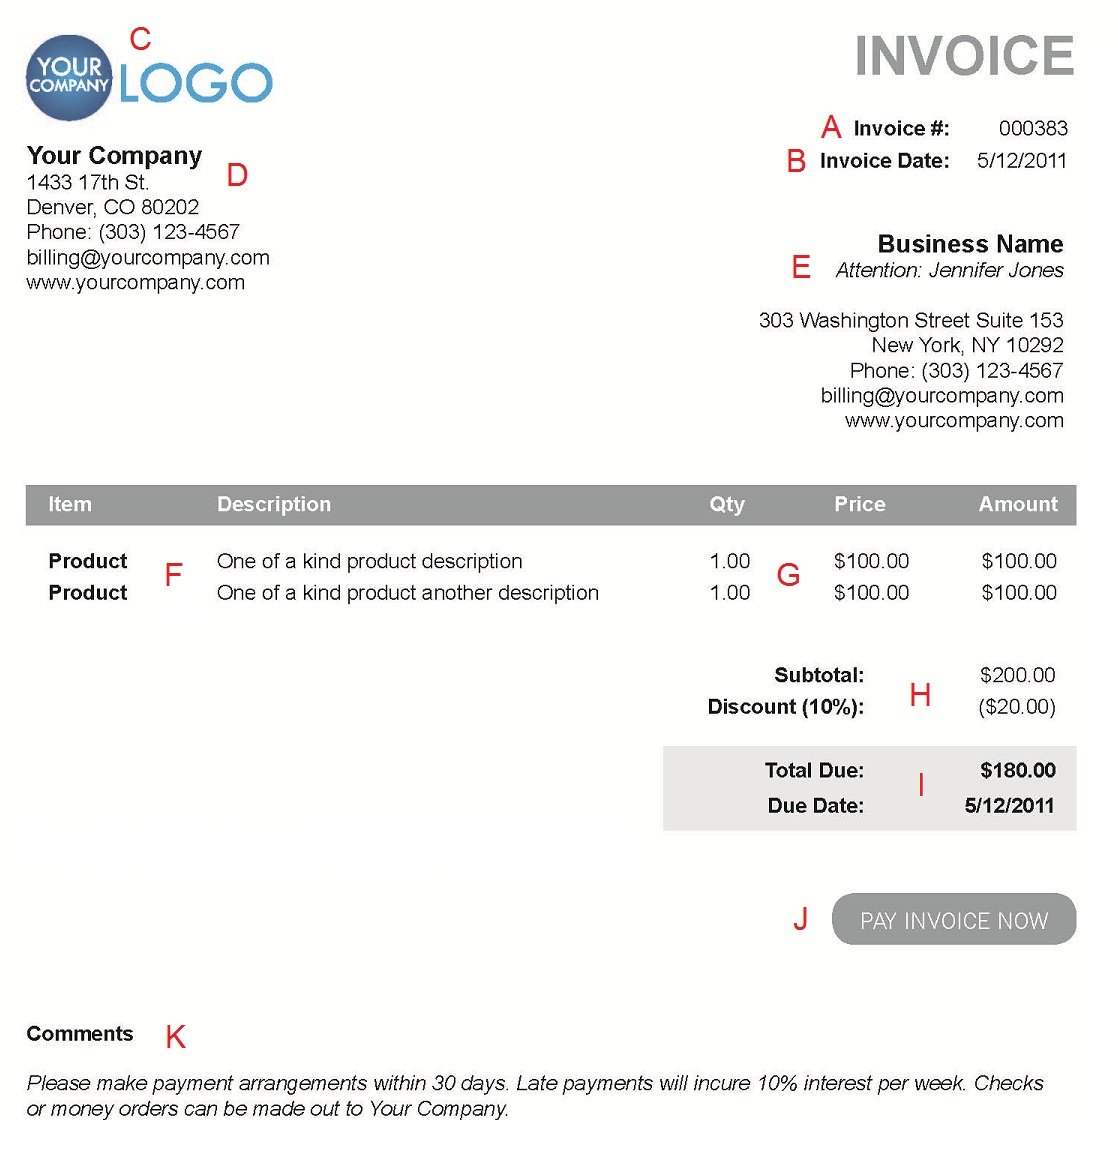 Breakupus  Prepossessing The  Different Sections Of An Electronic Payment Invoice With Heavenly A  With Extraordinary Itunes Store Receipts Also Acknowledgement Receipt Of Payment Template In Addition Income Tax Receipts By Year And Uk Receipt Template As Well As Receipts Means Additionally What Are Receipts In Accounting From Paysimplecom With Breakupus  Heavenly The  Different Sections Of An Electronic Payment Invoice With Extraordinary A  And Prepossessing Itunes Store Receipts Also Acknowledgement Receipt Of Payment Template In Addition Income Tax Receipts By Year From Paysimplecom